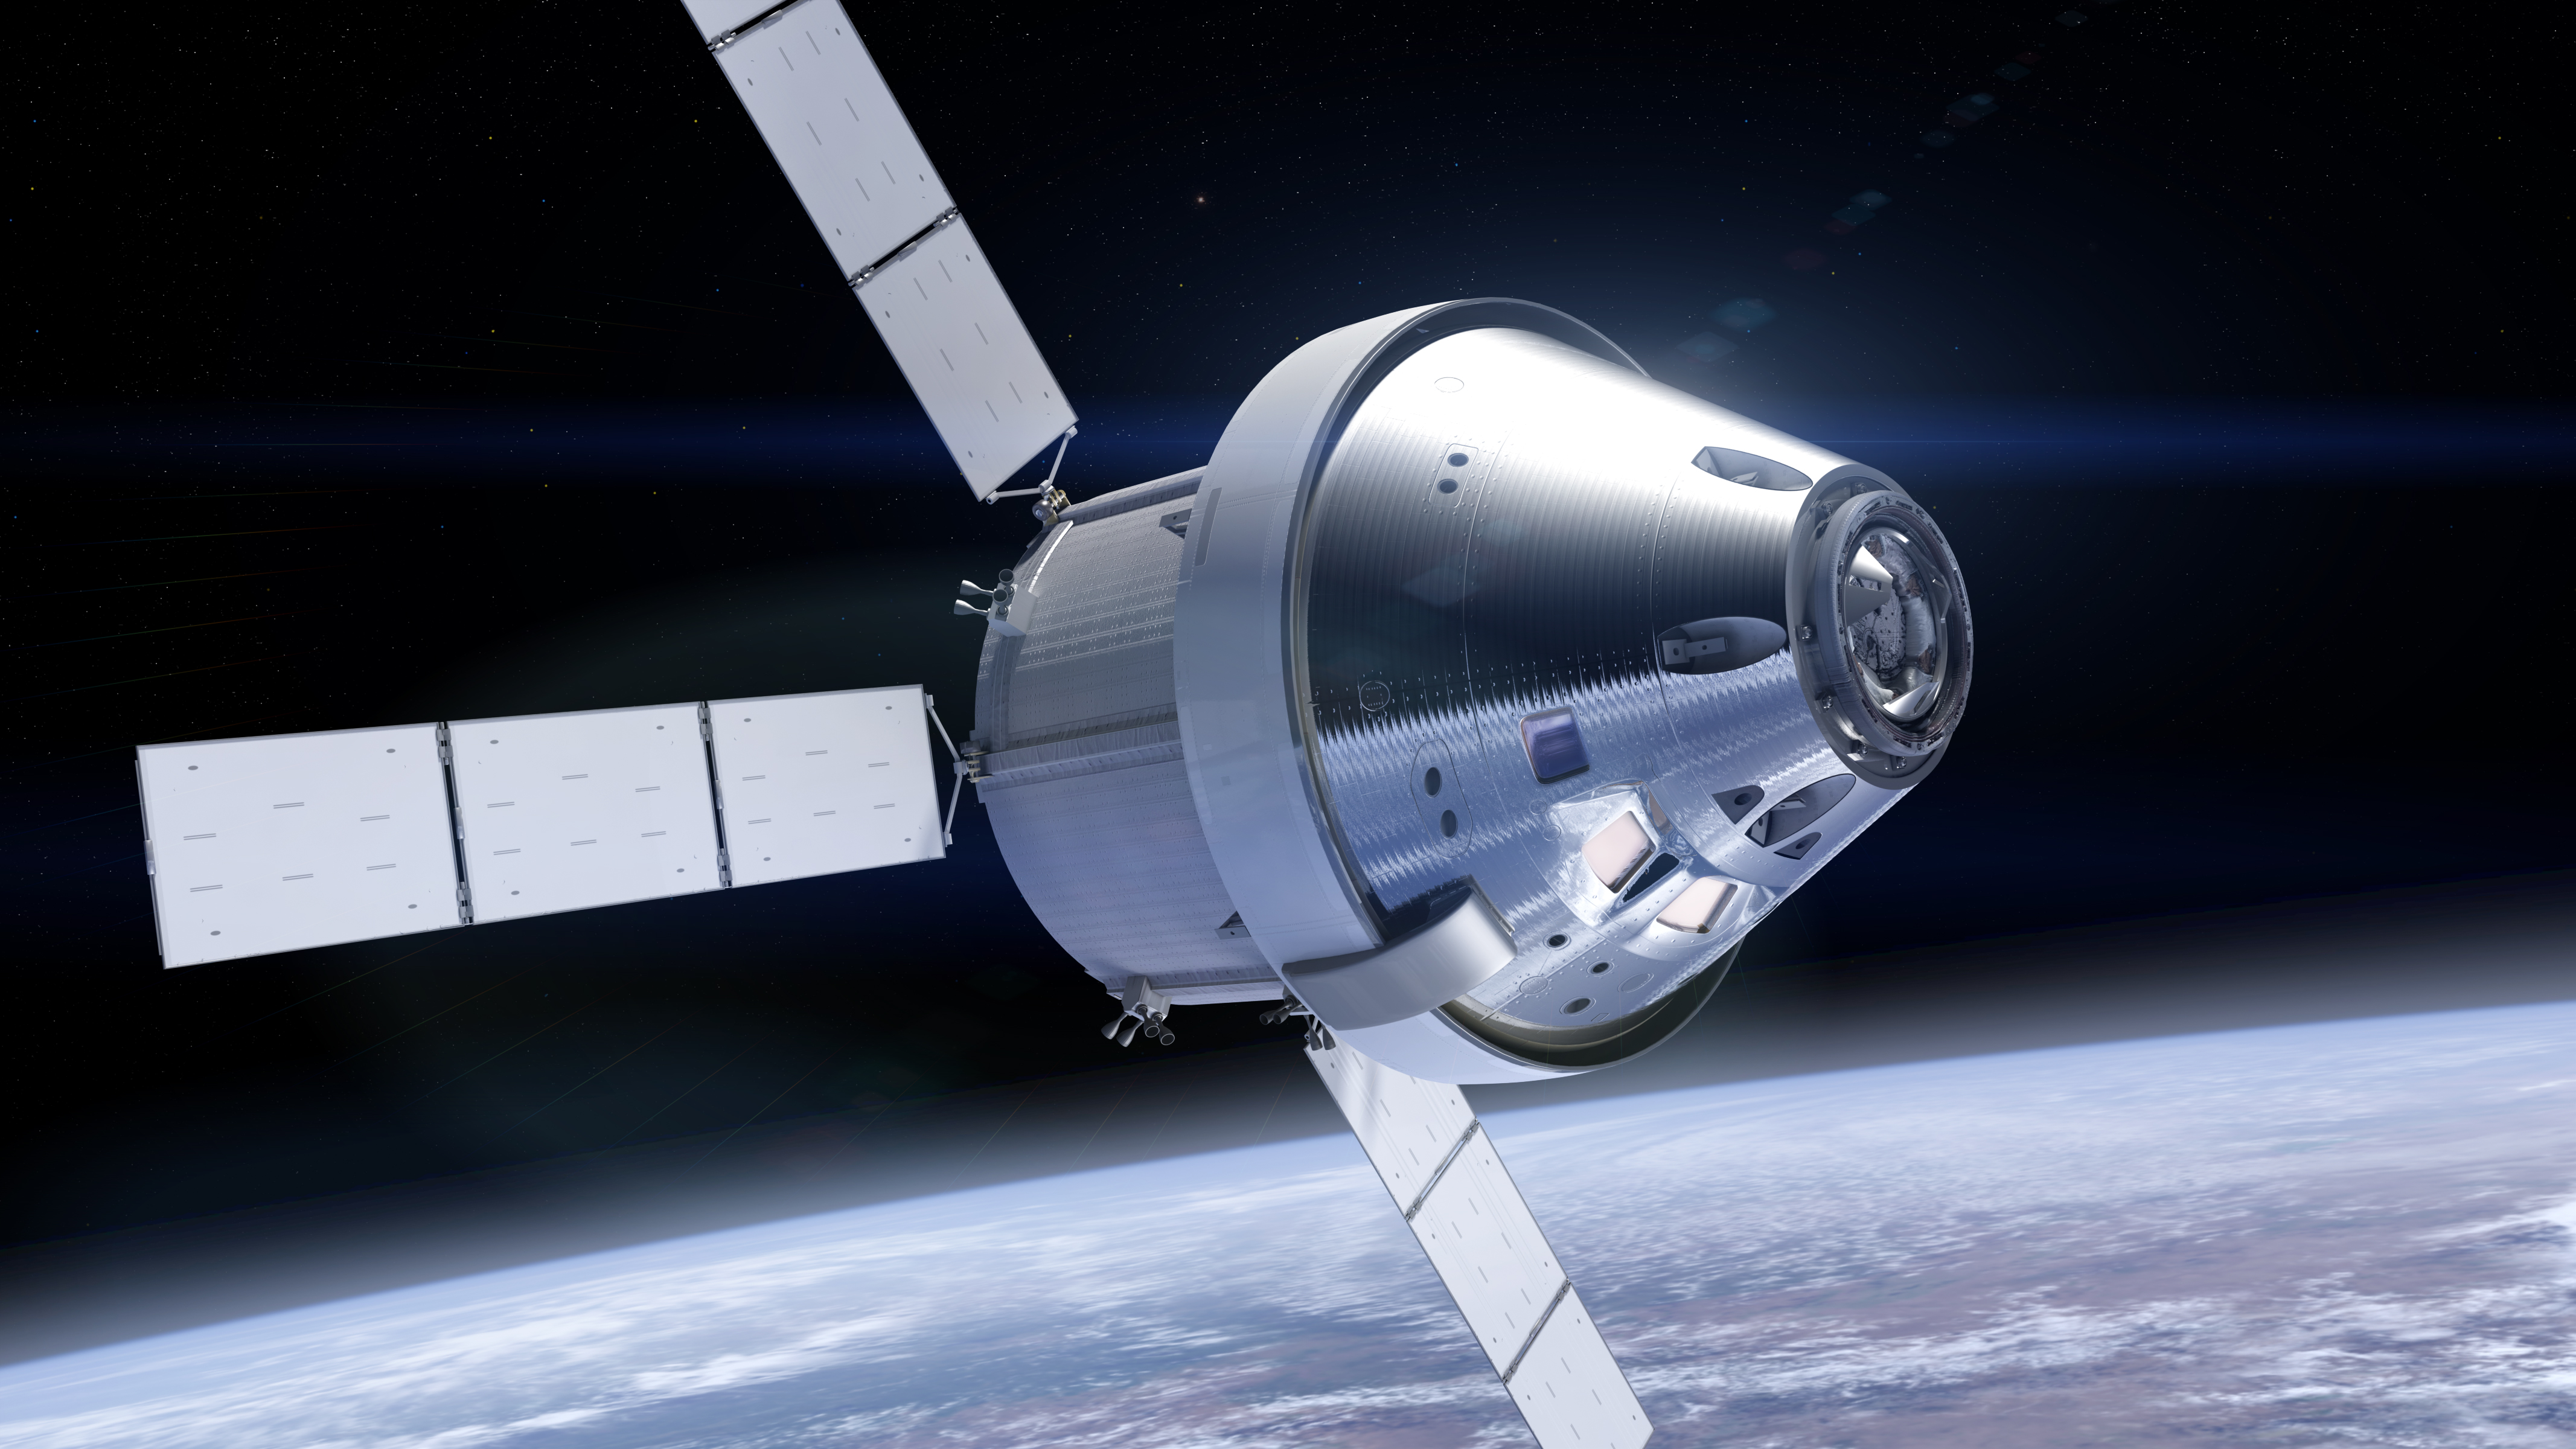 Orion Spacecraft Wikipedia